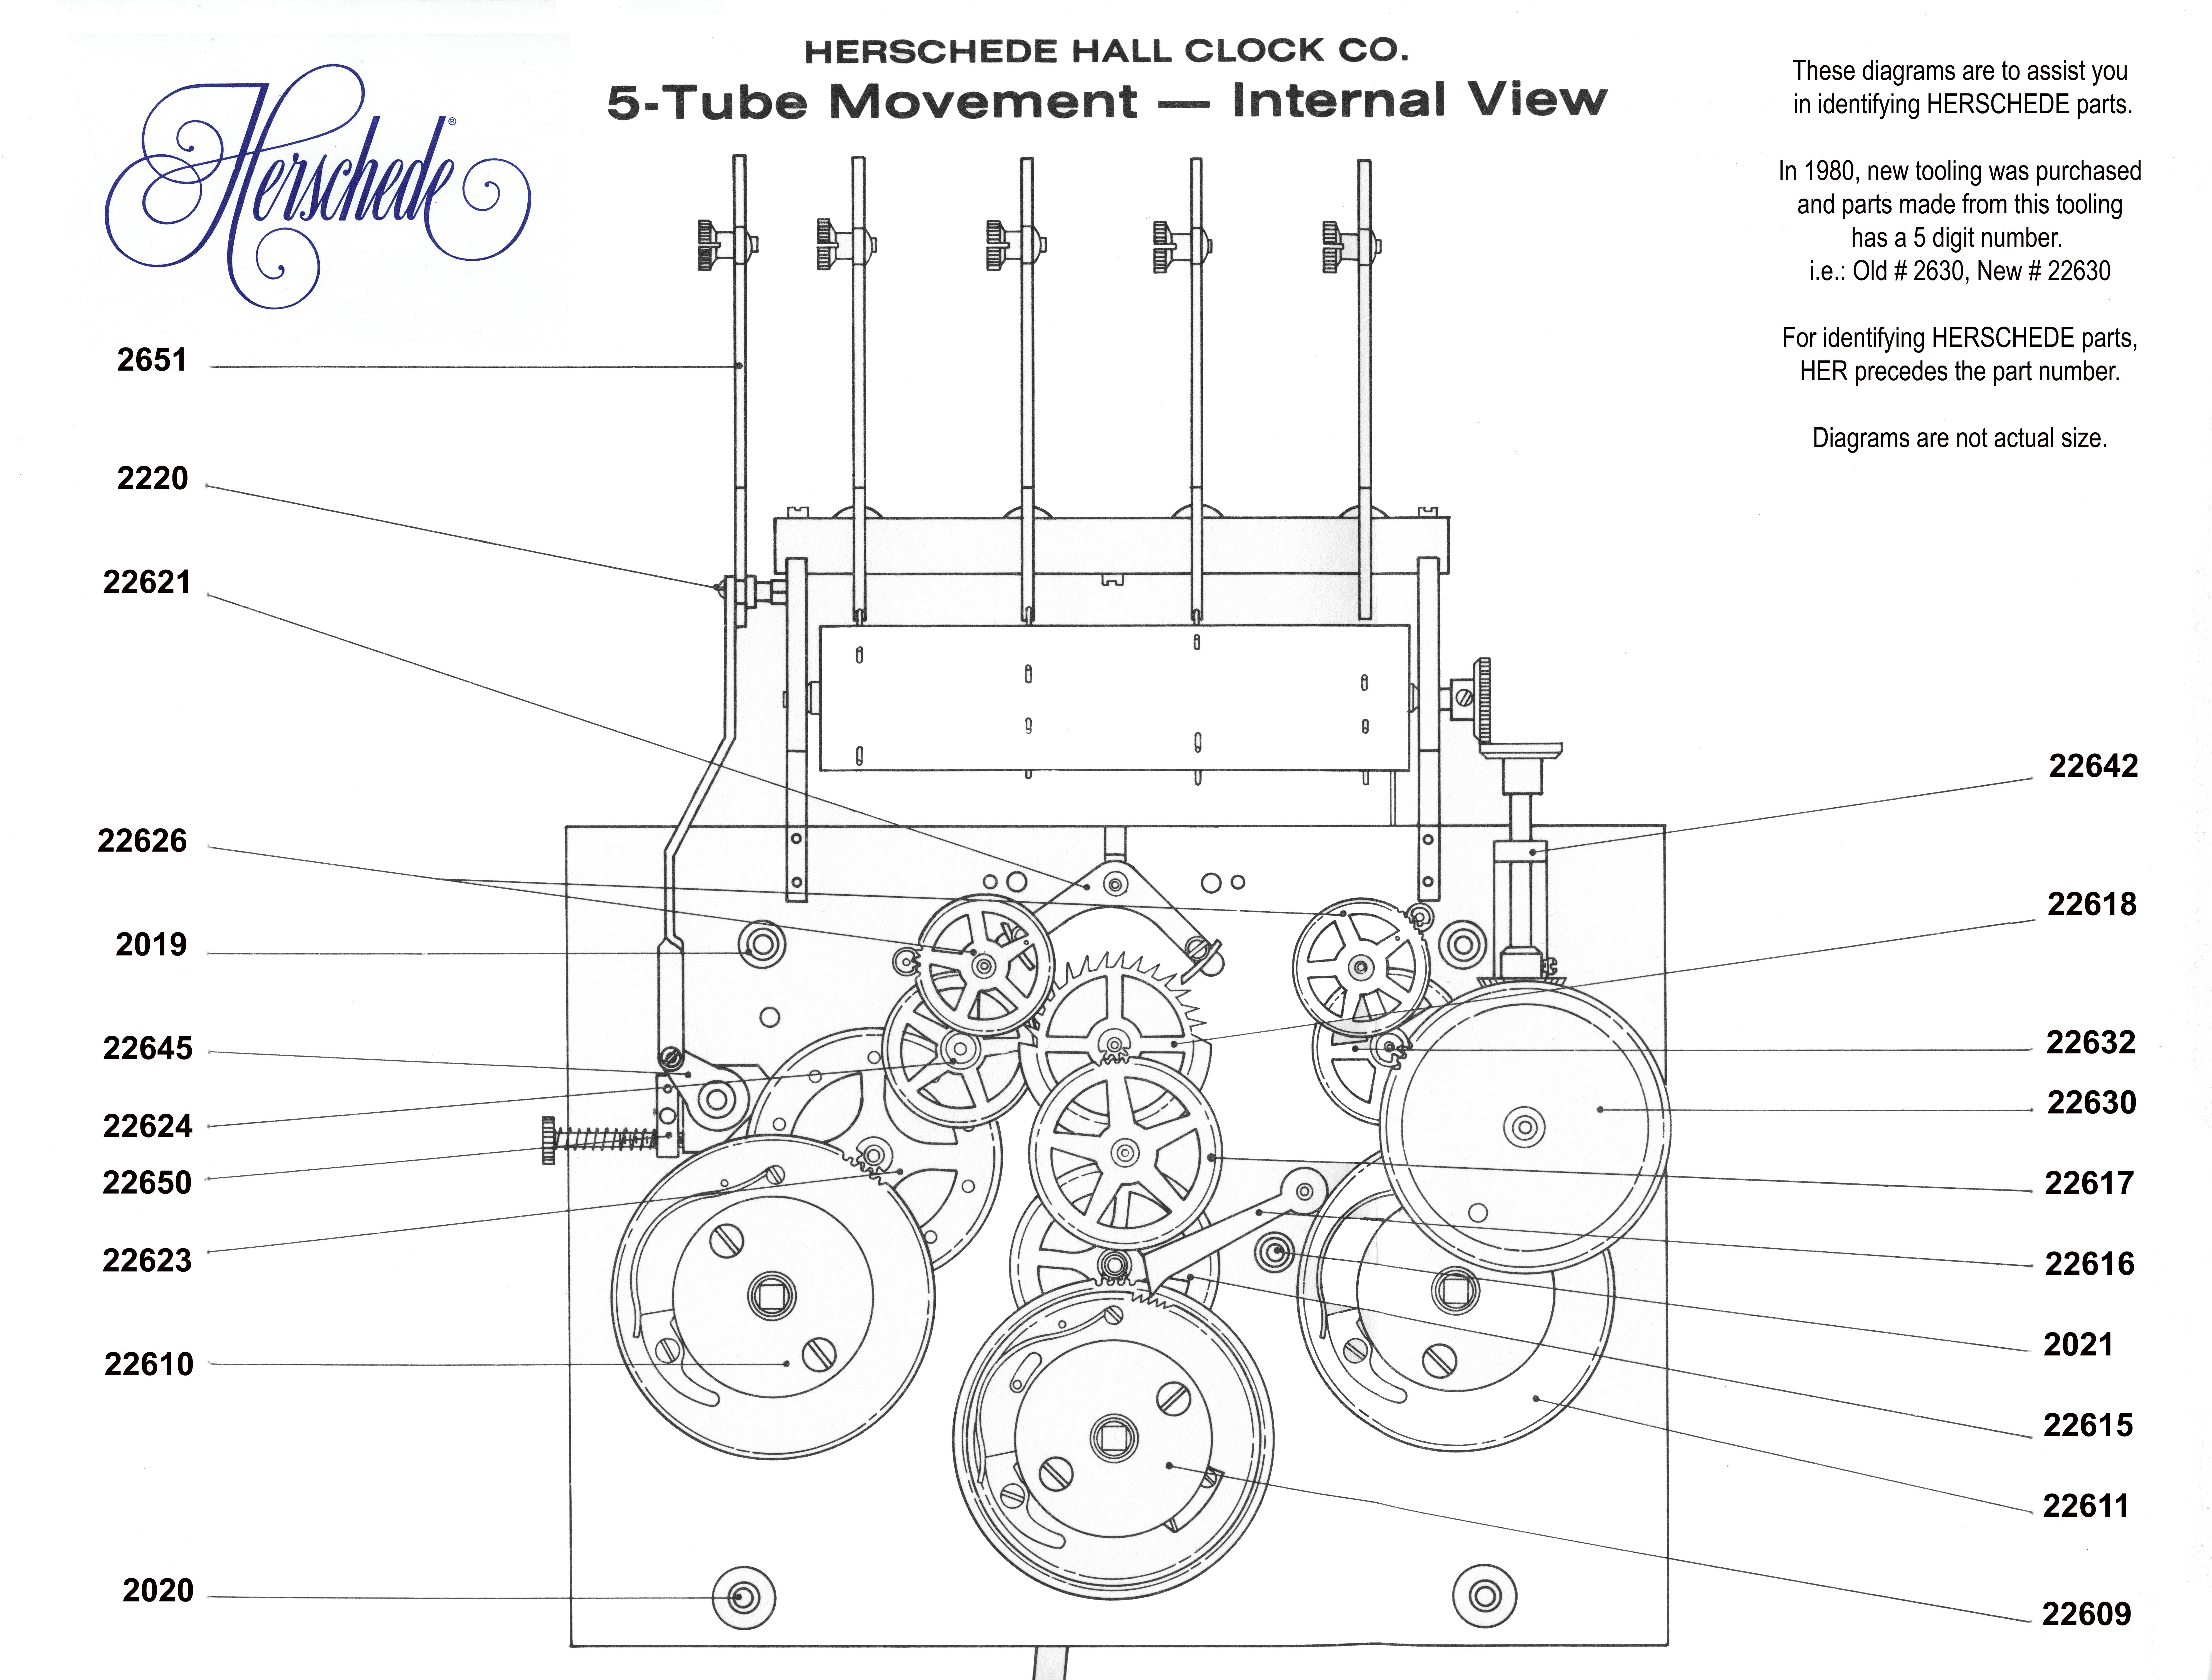 her-5t-internal-mov-view-with-pn-r1.jpg